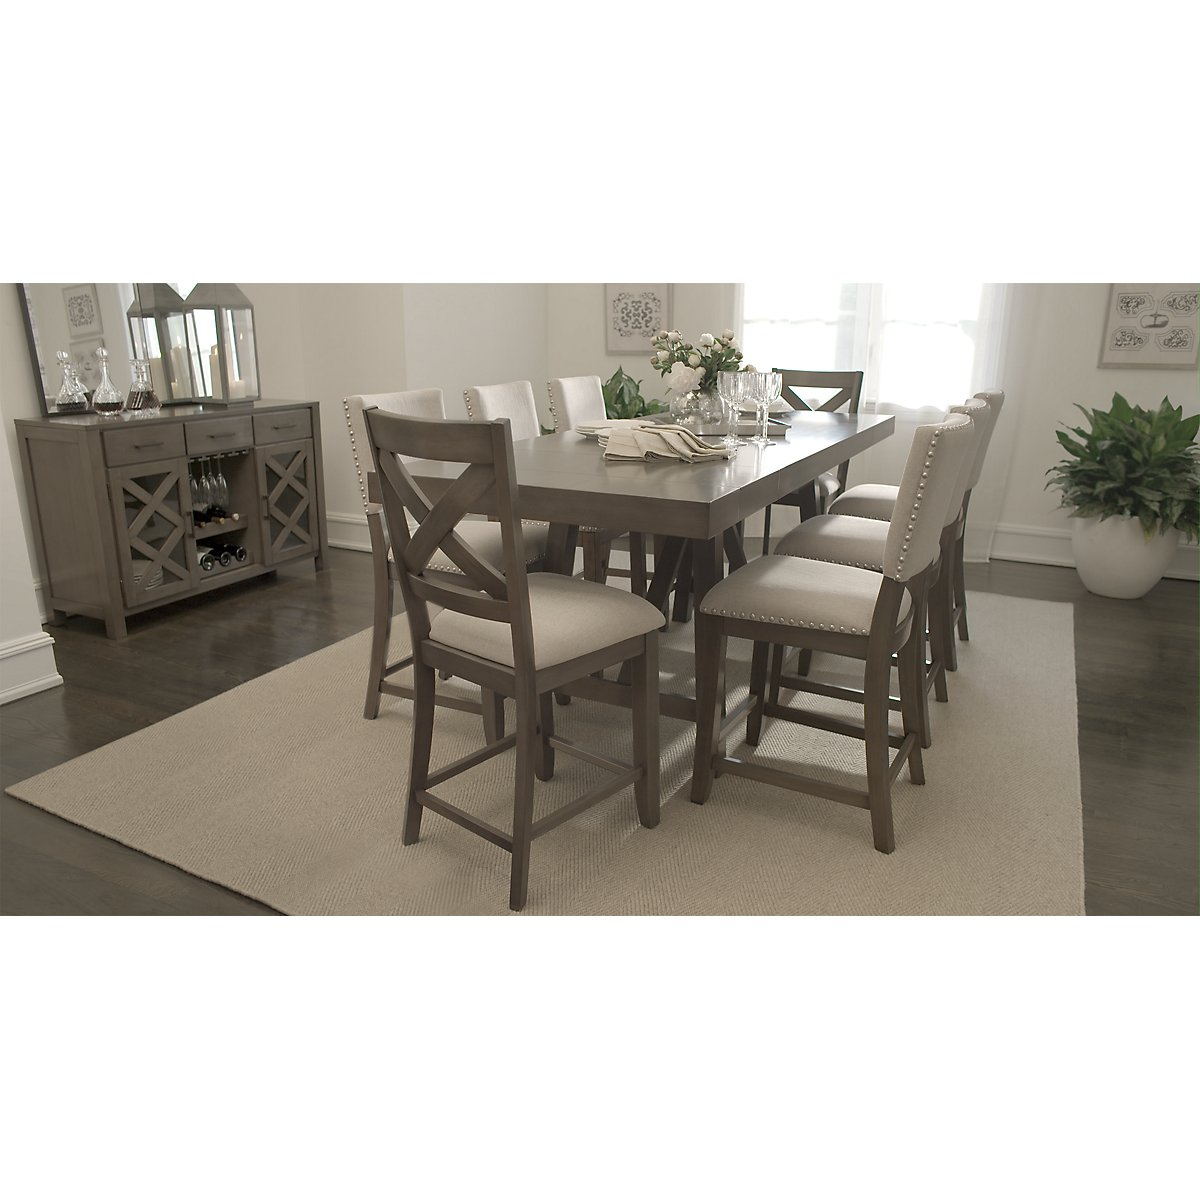 fs omaha gray high dining table high kitchen table Omaha Gray High Dining Table VIEW LARGER